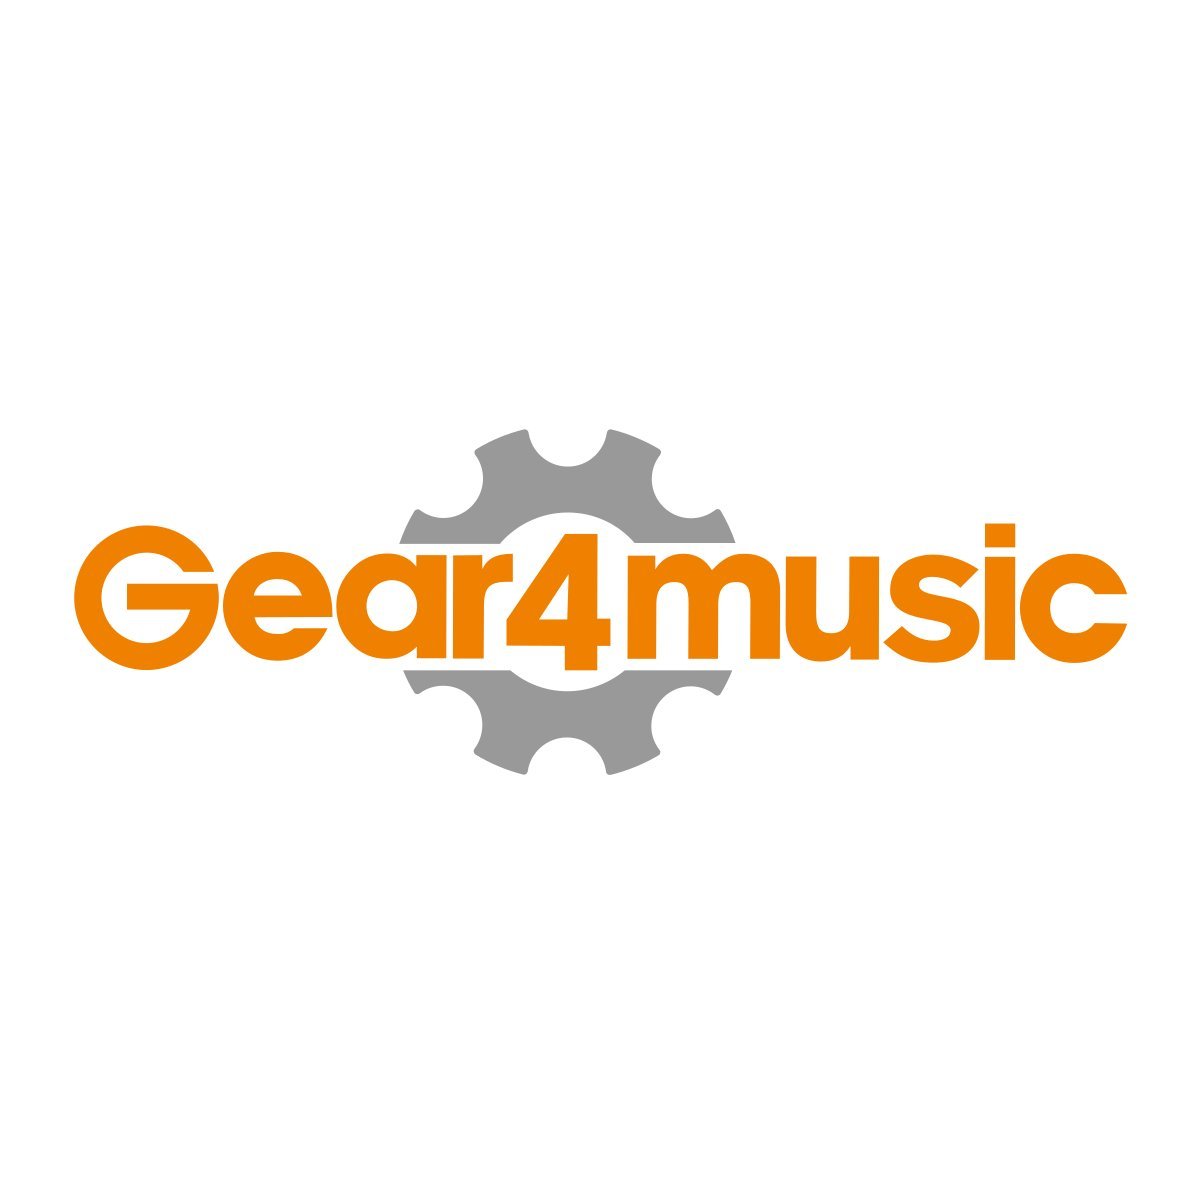 iClamplificatore per Aste per microfoni by Gear4music